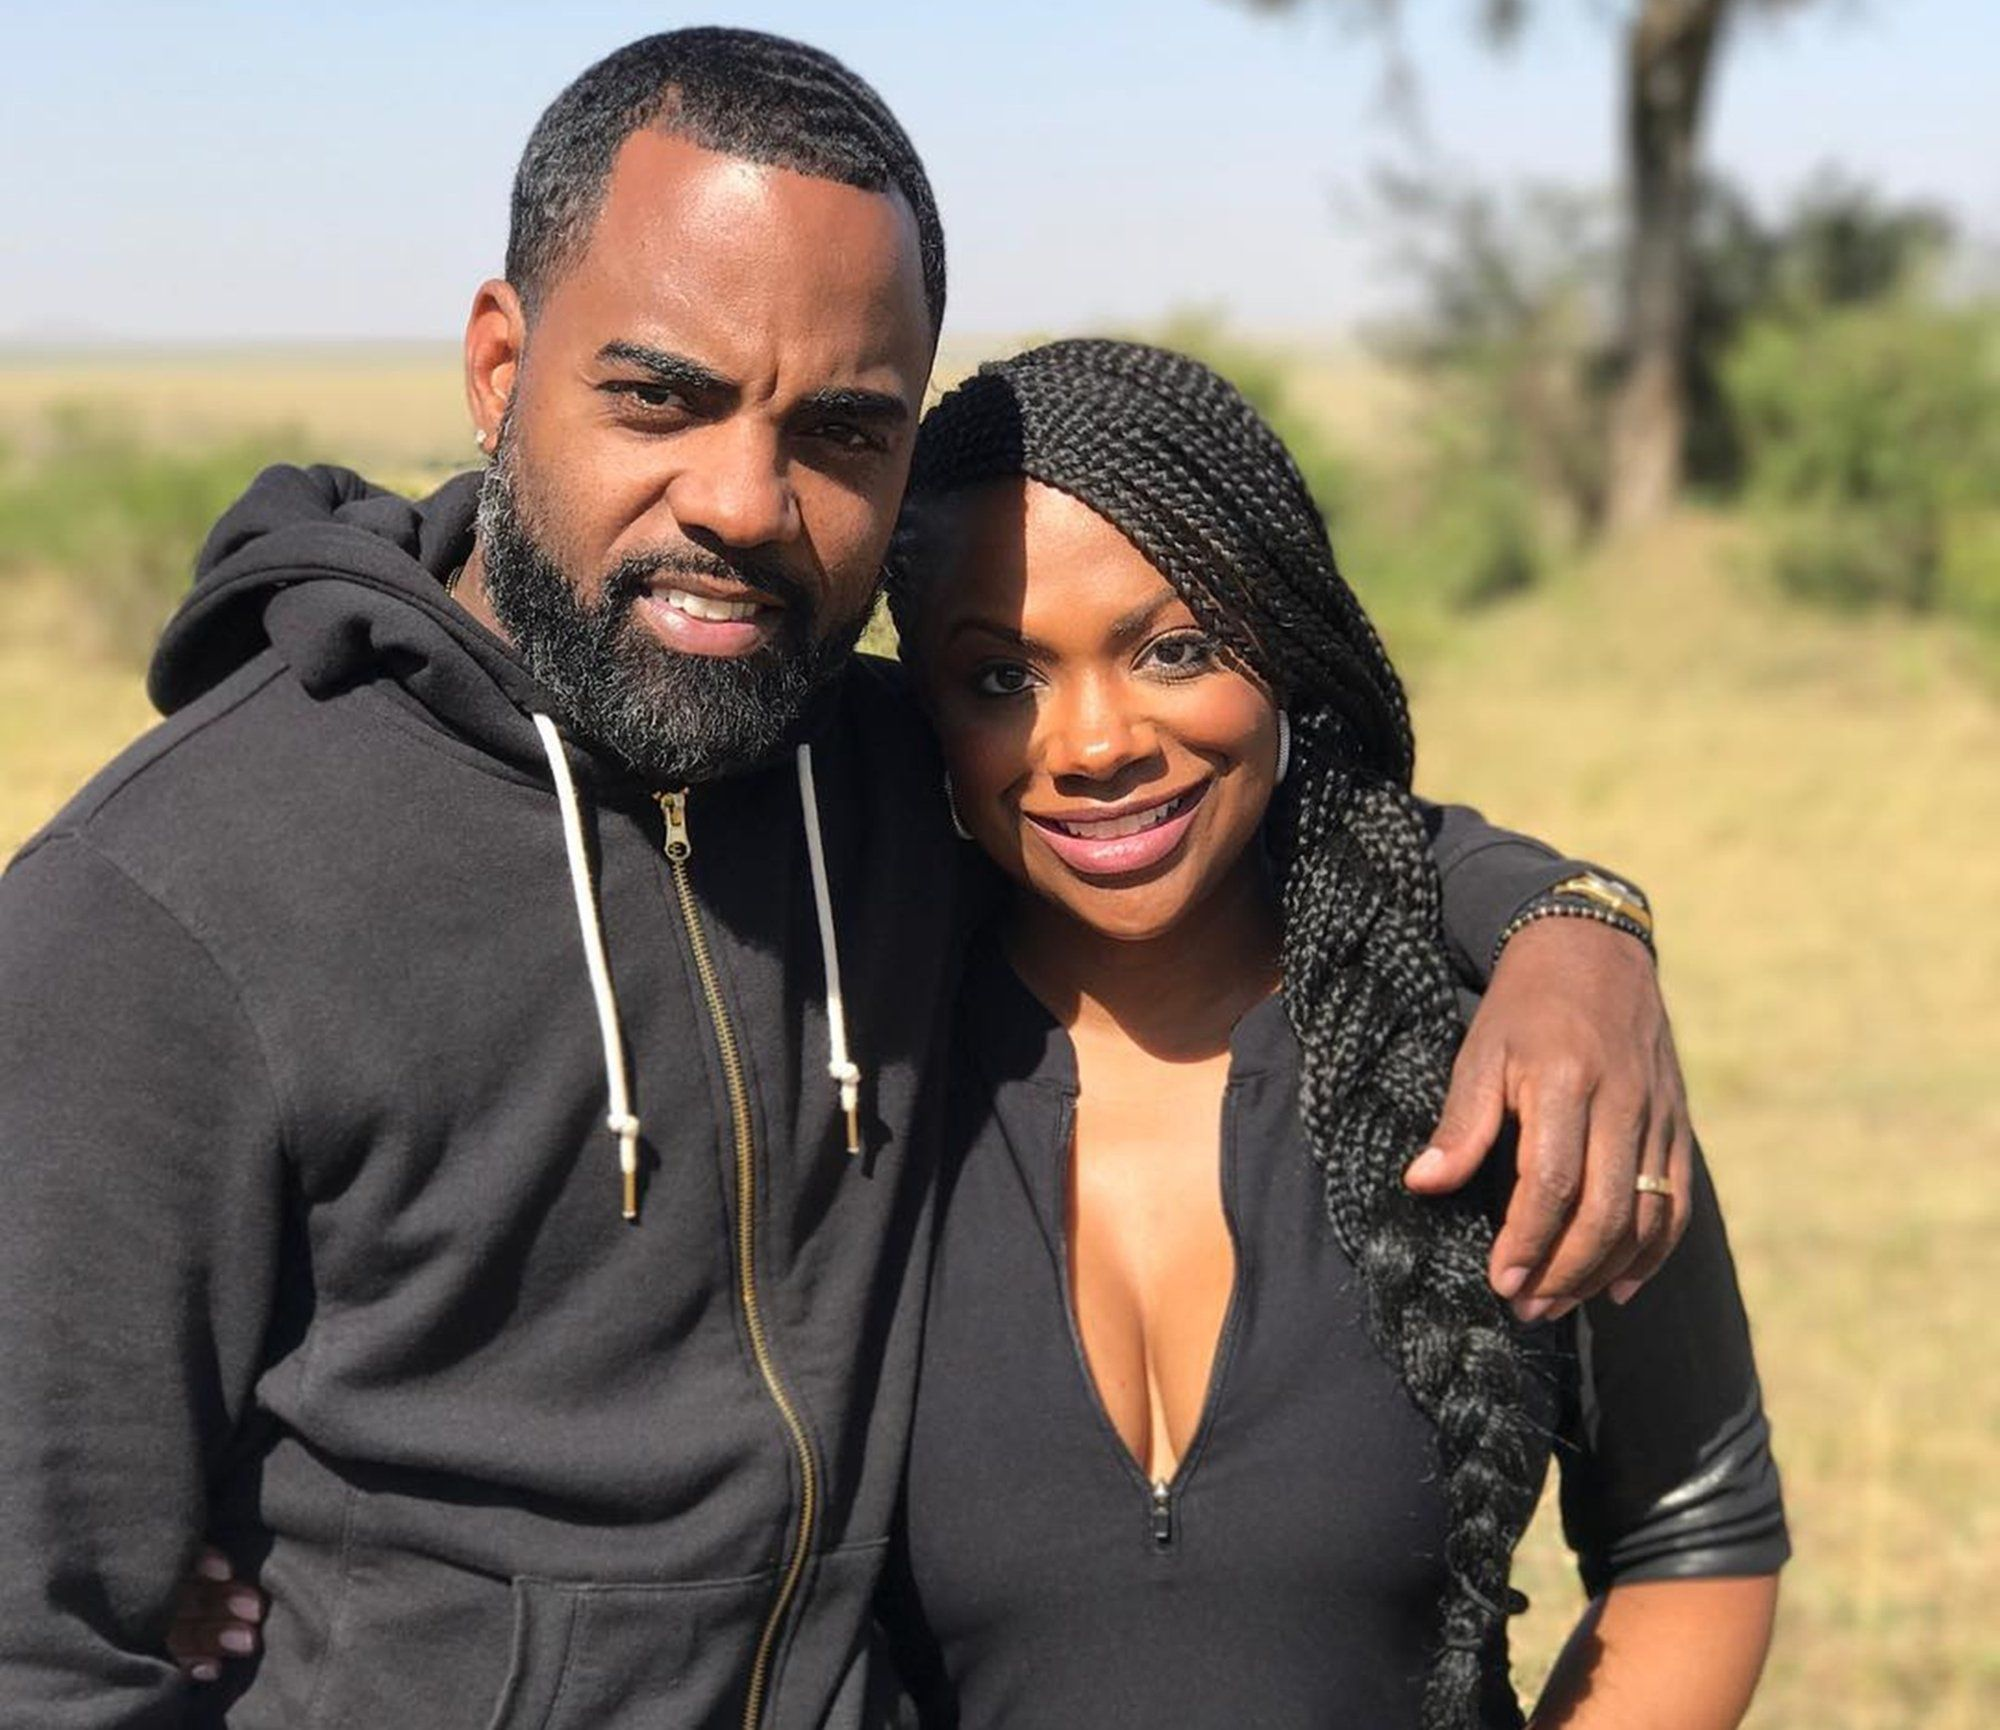 Kandi Burruss' Husband, Todd Tucker Joins Her At The Rehearsal - See Him Stretching With The Performers And Check Out The Reason For Which Fans Are Laughing